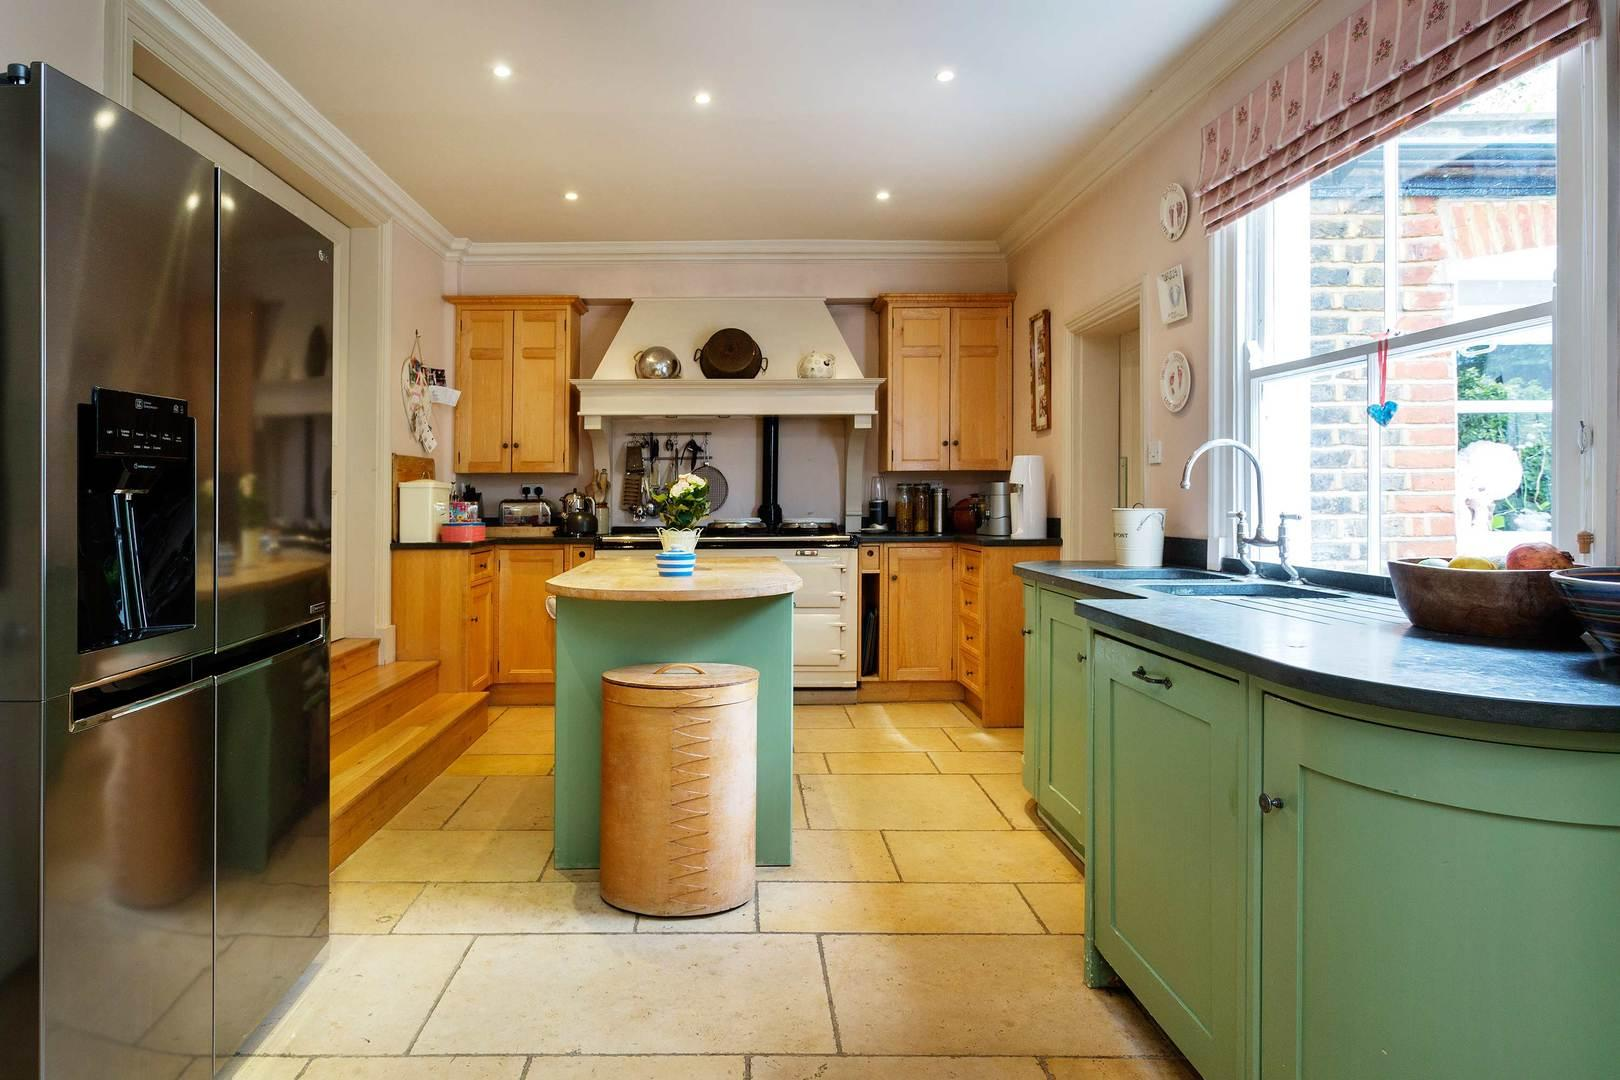 Property Image 2 - Attractive Tranquil Tooting Home with Wonderful Garden